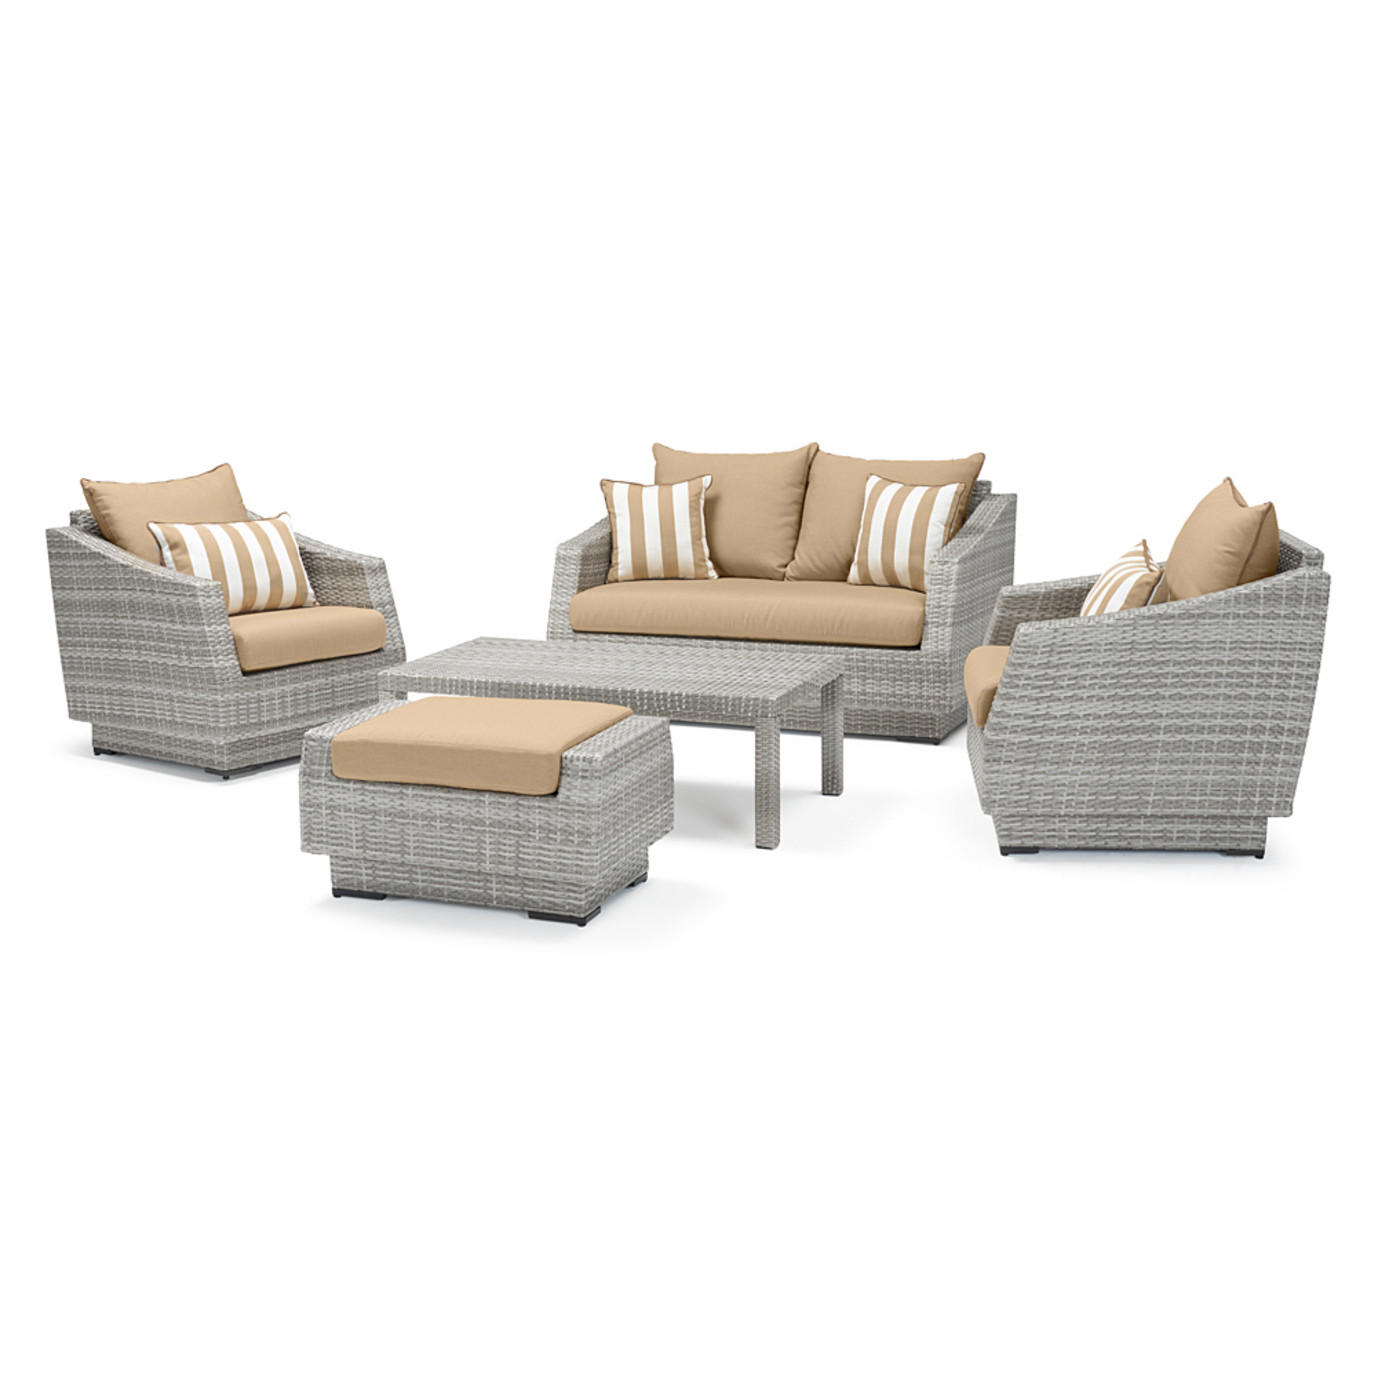 Cannes™ 5 Piece Love & Club Seating Set - Maxim Beige